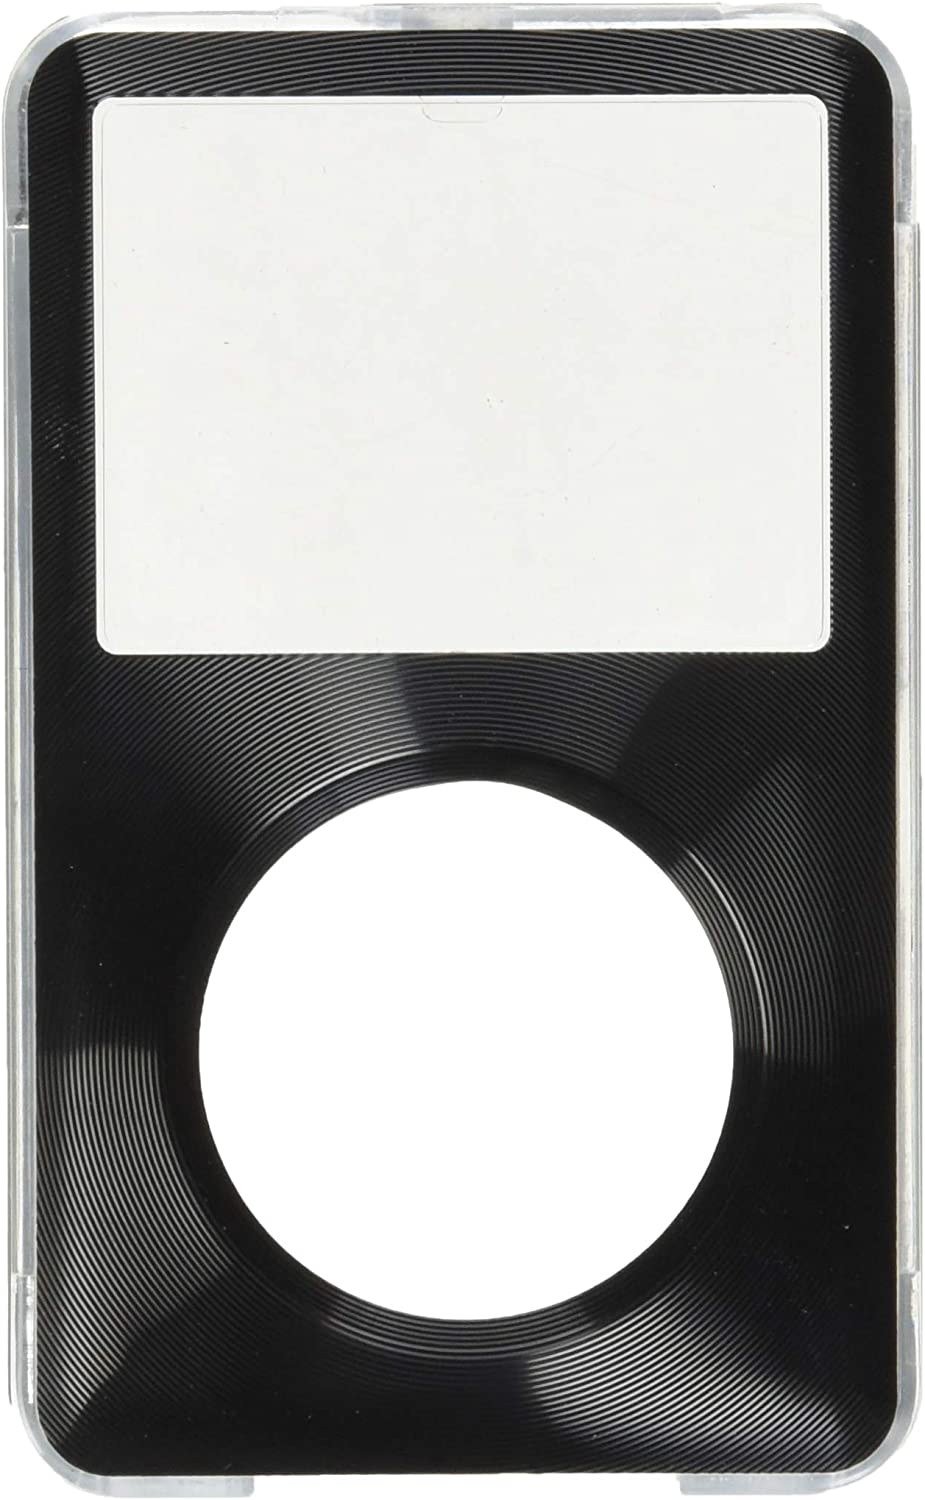 MIP INC Classic Hard Case with Aluminum Plating for Apple iPod 80gb 120gb 160gb (Black)